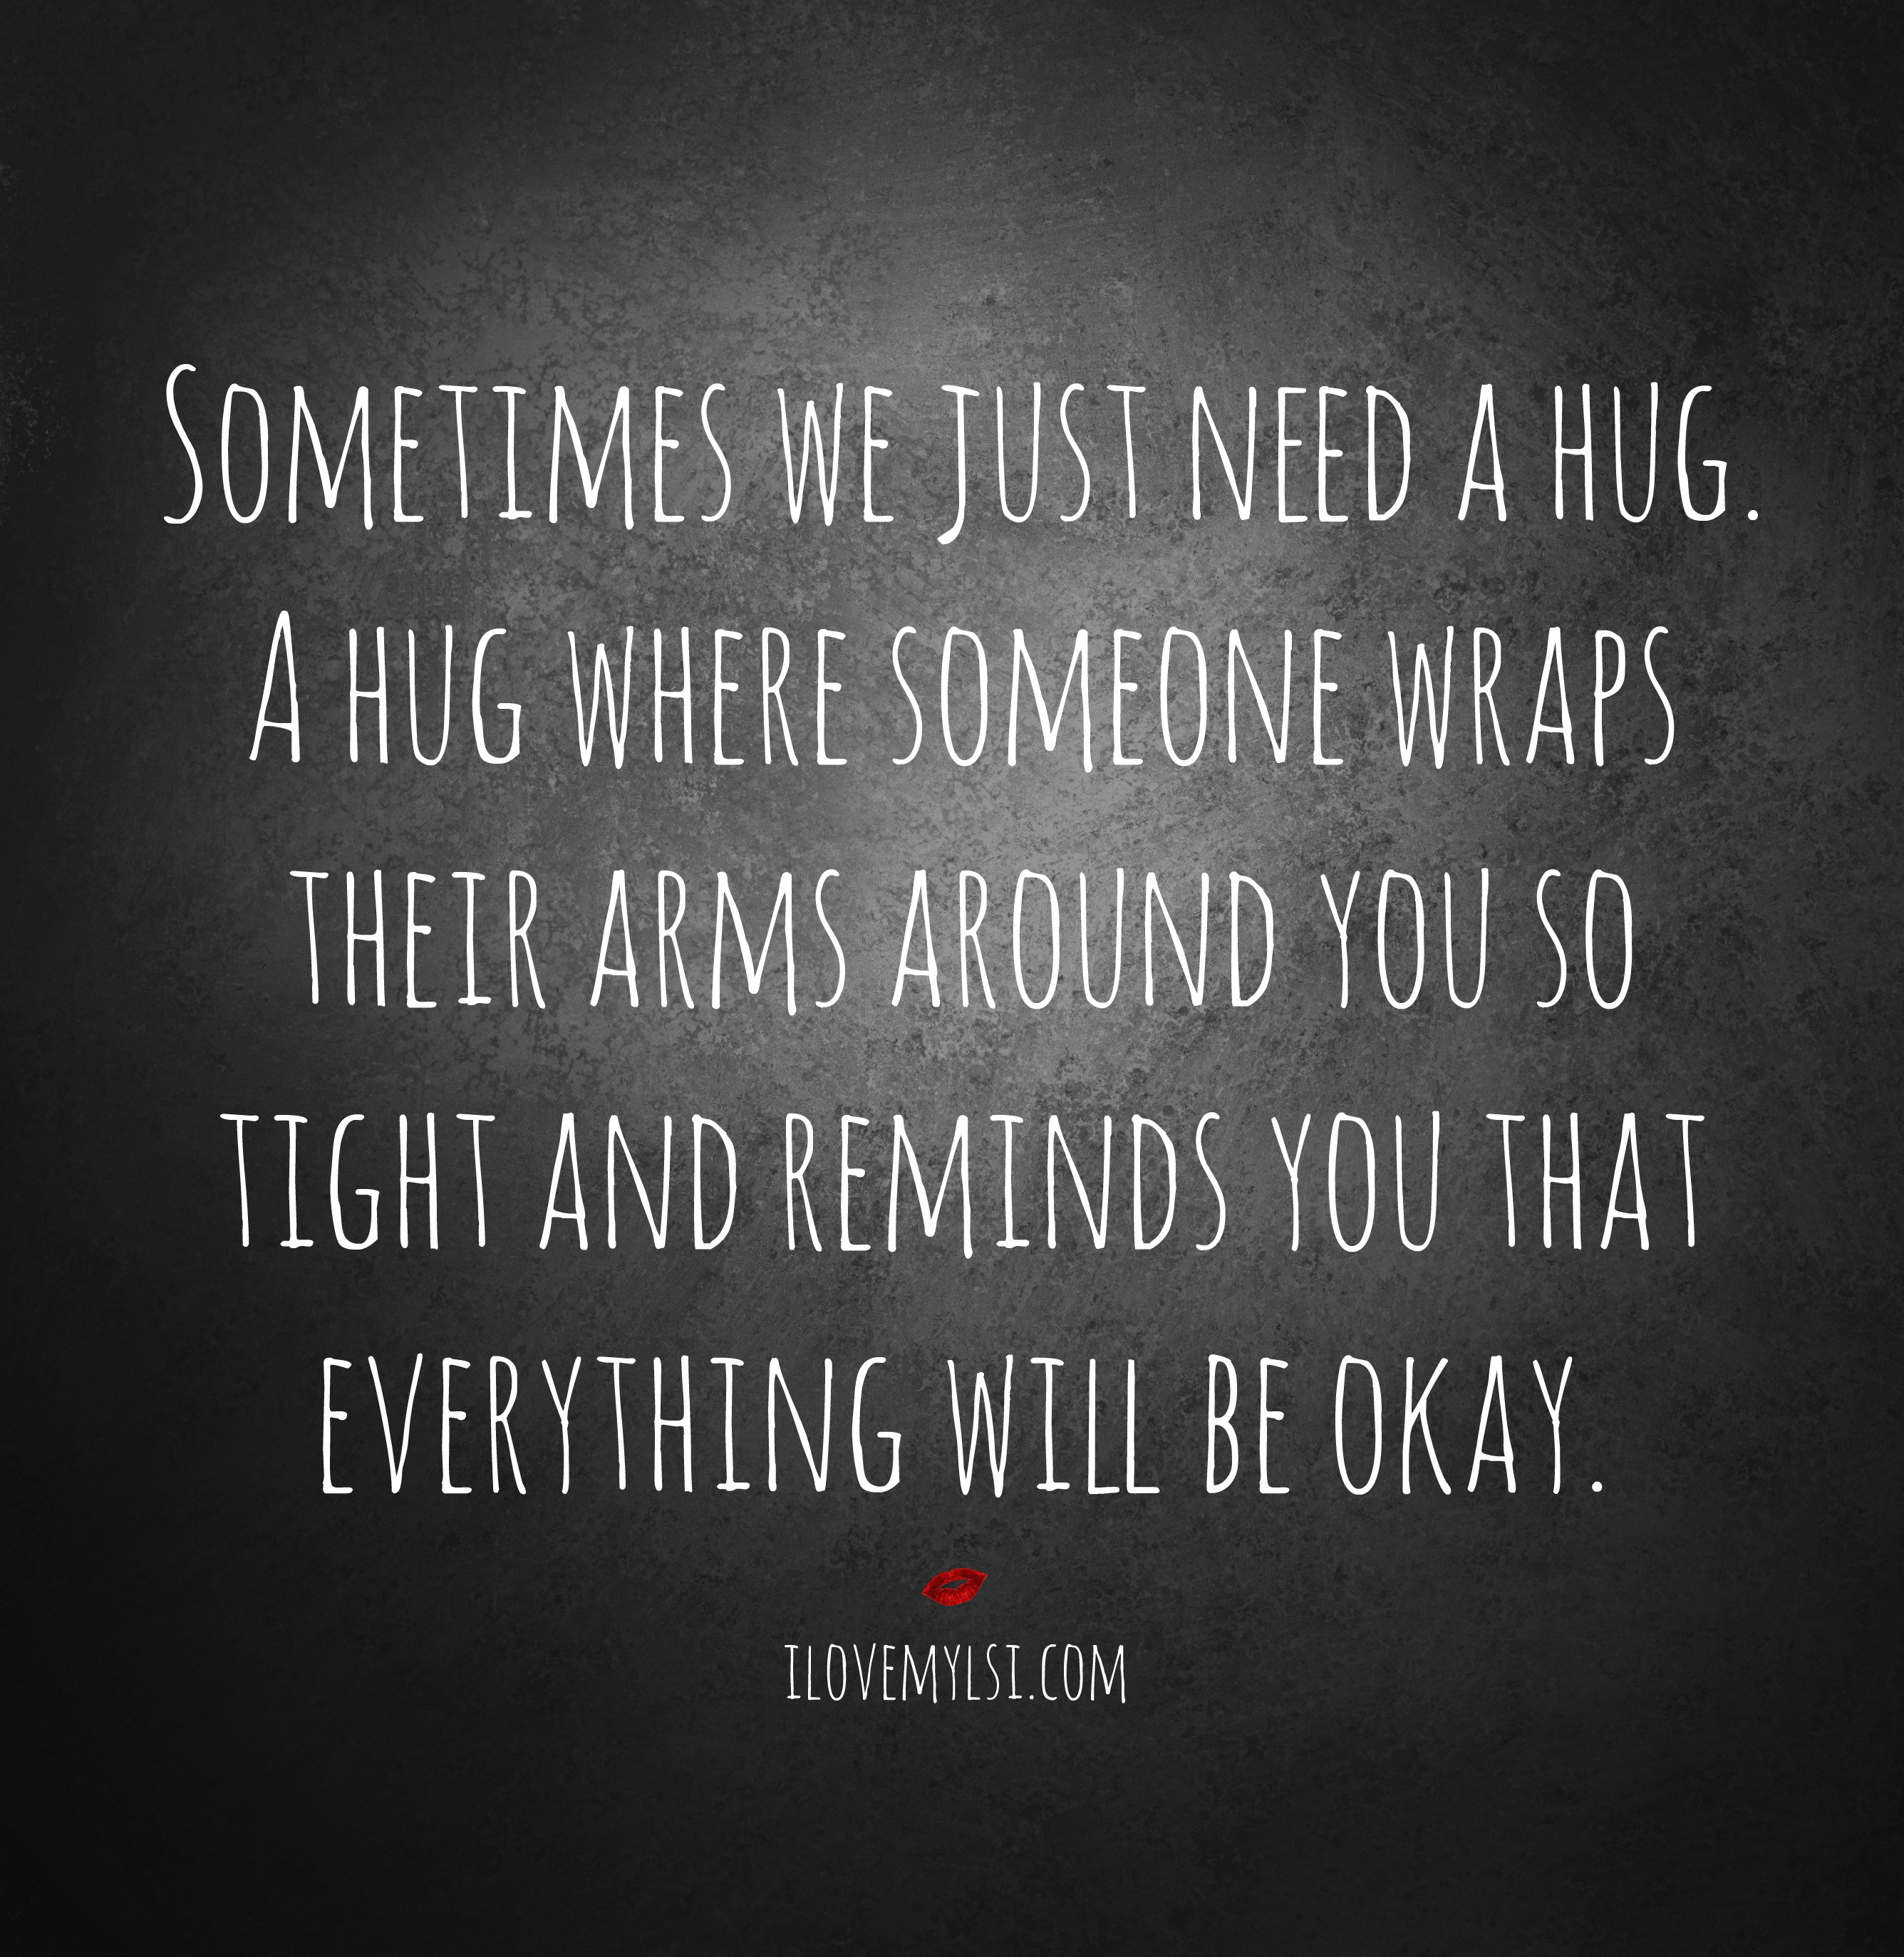 I Want To Cuddle With You Quotes: Need A Hug Quotes. QuotesGram